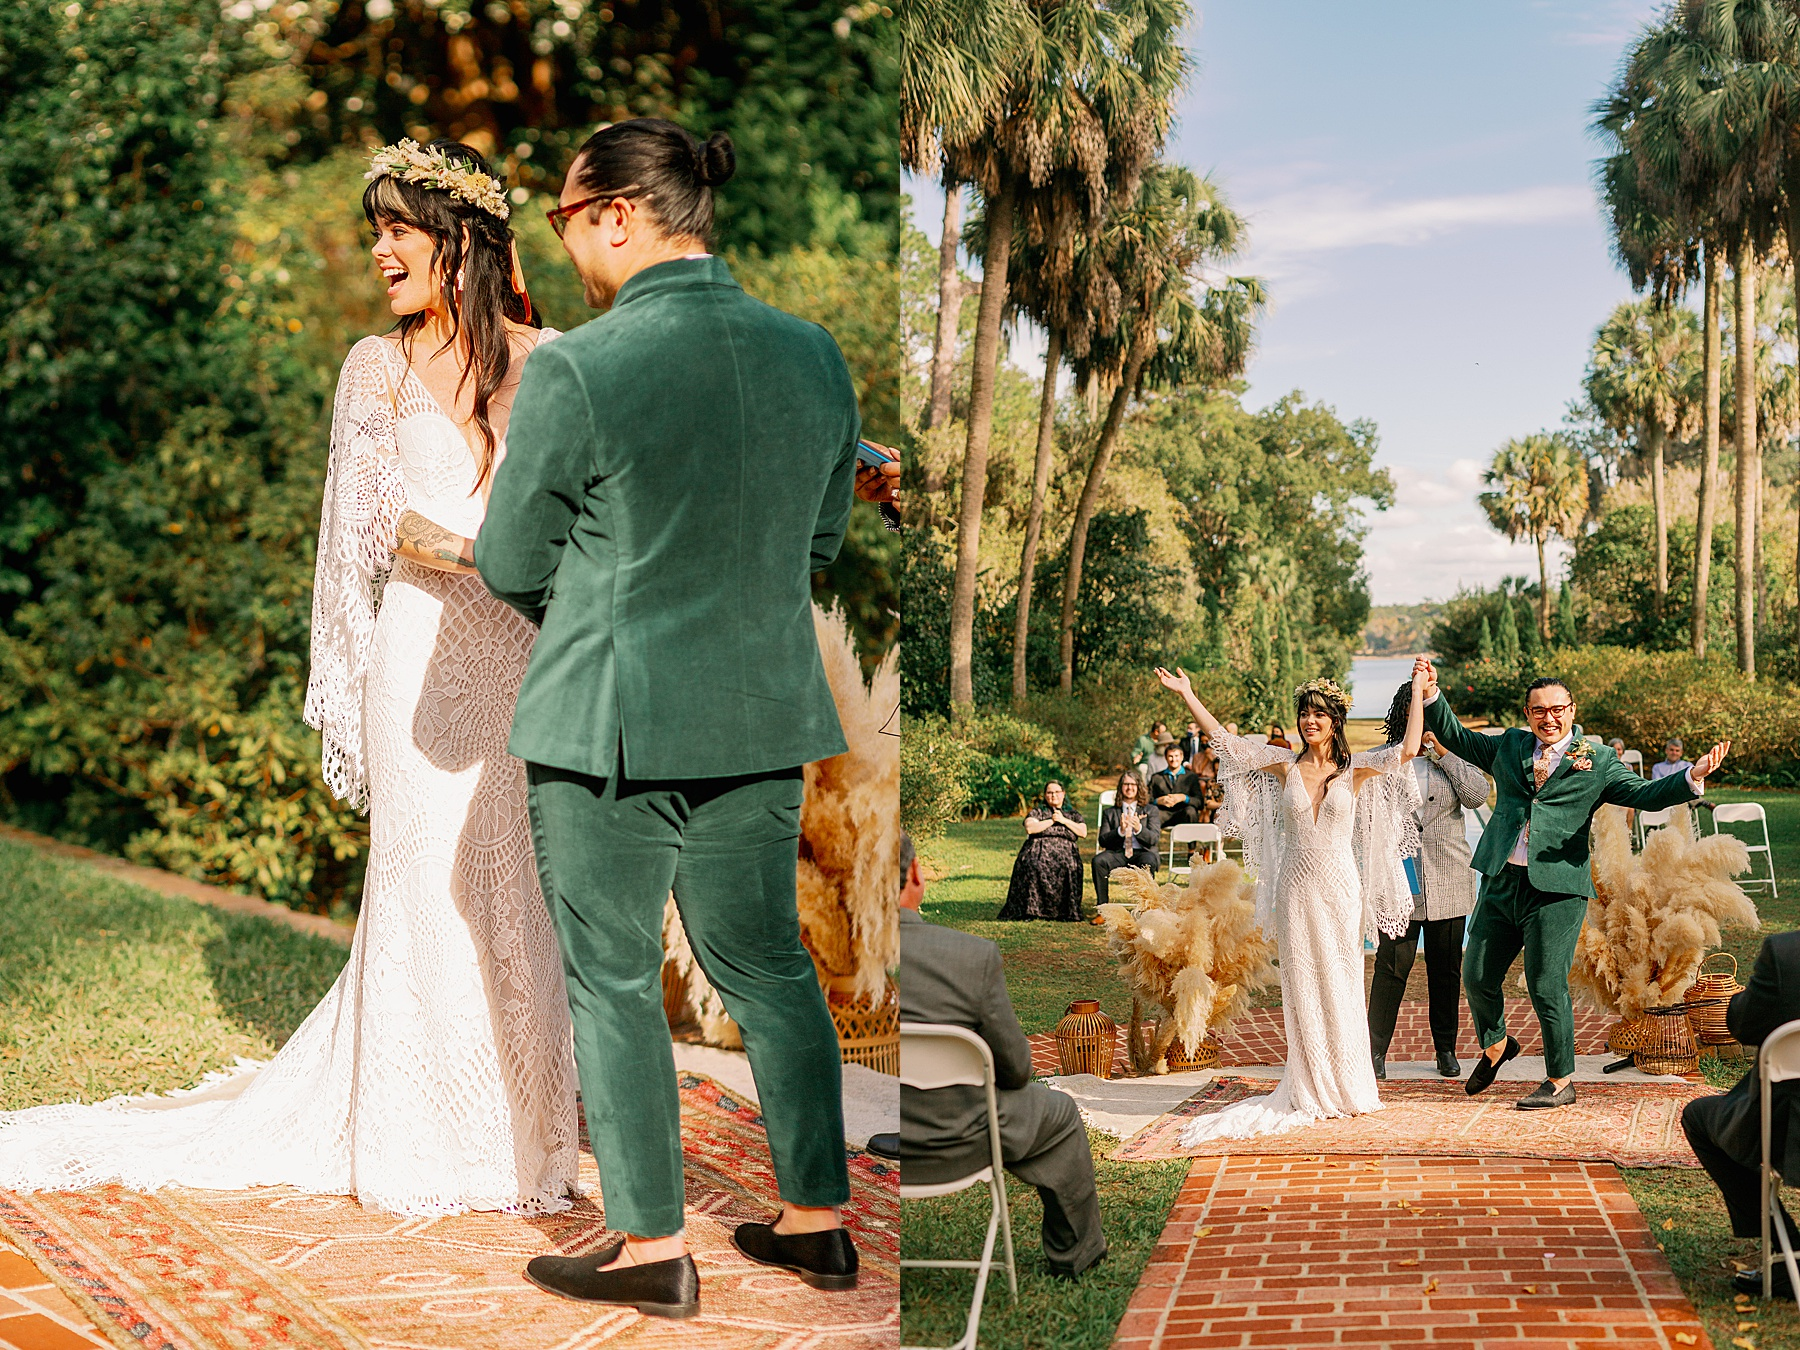 Wedding ceremony at the Alfred B Maclay Gardens in Tallahassee